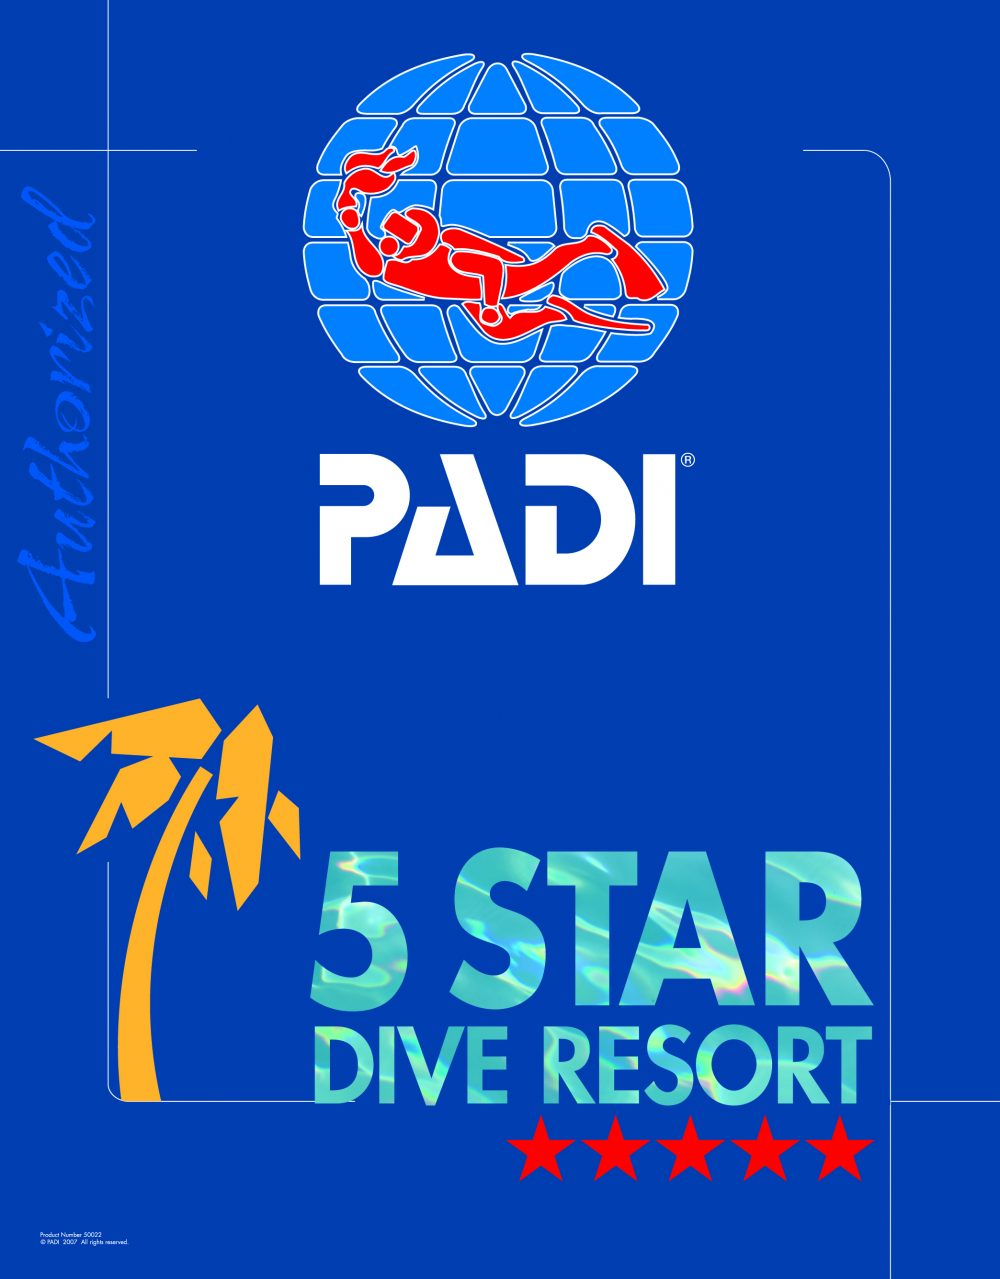 Johan's Subic Bay's First 5 Star Dive Resort